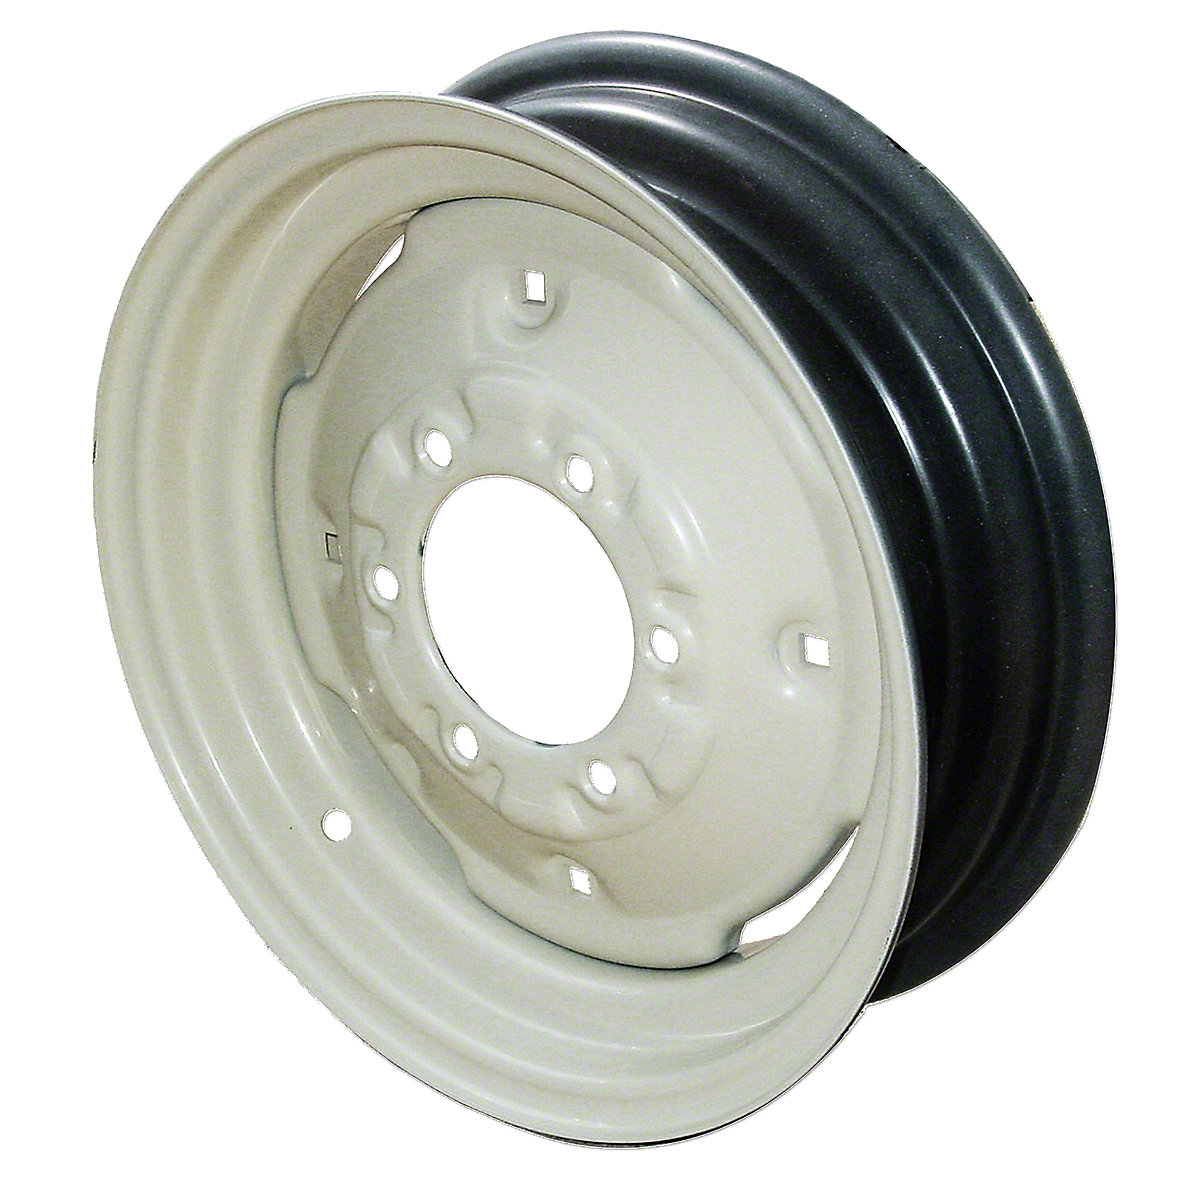 4.5 X 16 6 Lug Front Wheel With 4 Wheel Weight Holes For Oliver: 77,88,550, 770, 880,1550,1555, 1600, 1650,1655 Super 55, Super 77, Super 88. 6 CIRCLE WITH 4.62 PILOT Hole. 2500 LB CAPACITY FOR 5.50 x 6.00X16 TIRES. Replace Oliver PN#: 1ks-729a TO DETERMINE BACKSPACING, LAY THE WHEEL FLAT ON THE GROUND WITH THE BACK OF WHEEL FACING UP. NEXT, LAY A STRAIGHTEDGE ACROSS WHEEL AND MEASURE THE DISTANCE FROM THE BACK SIDE OF MOUNt  Please check and measure your tractor closely because if this rim does not fit, we do not pay return shipping on rims.